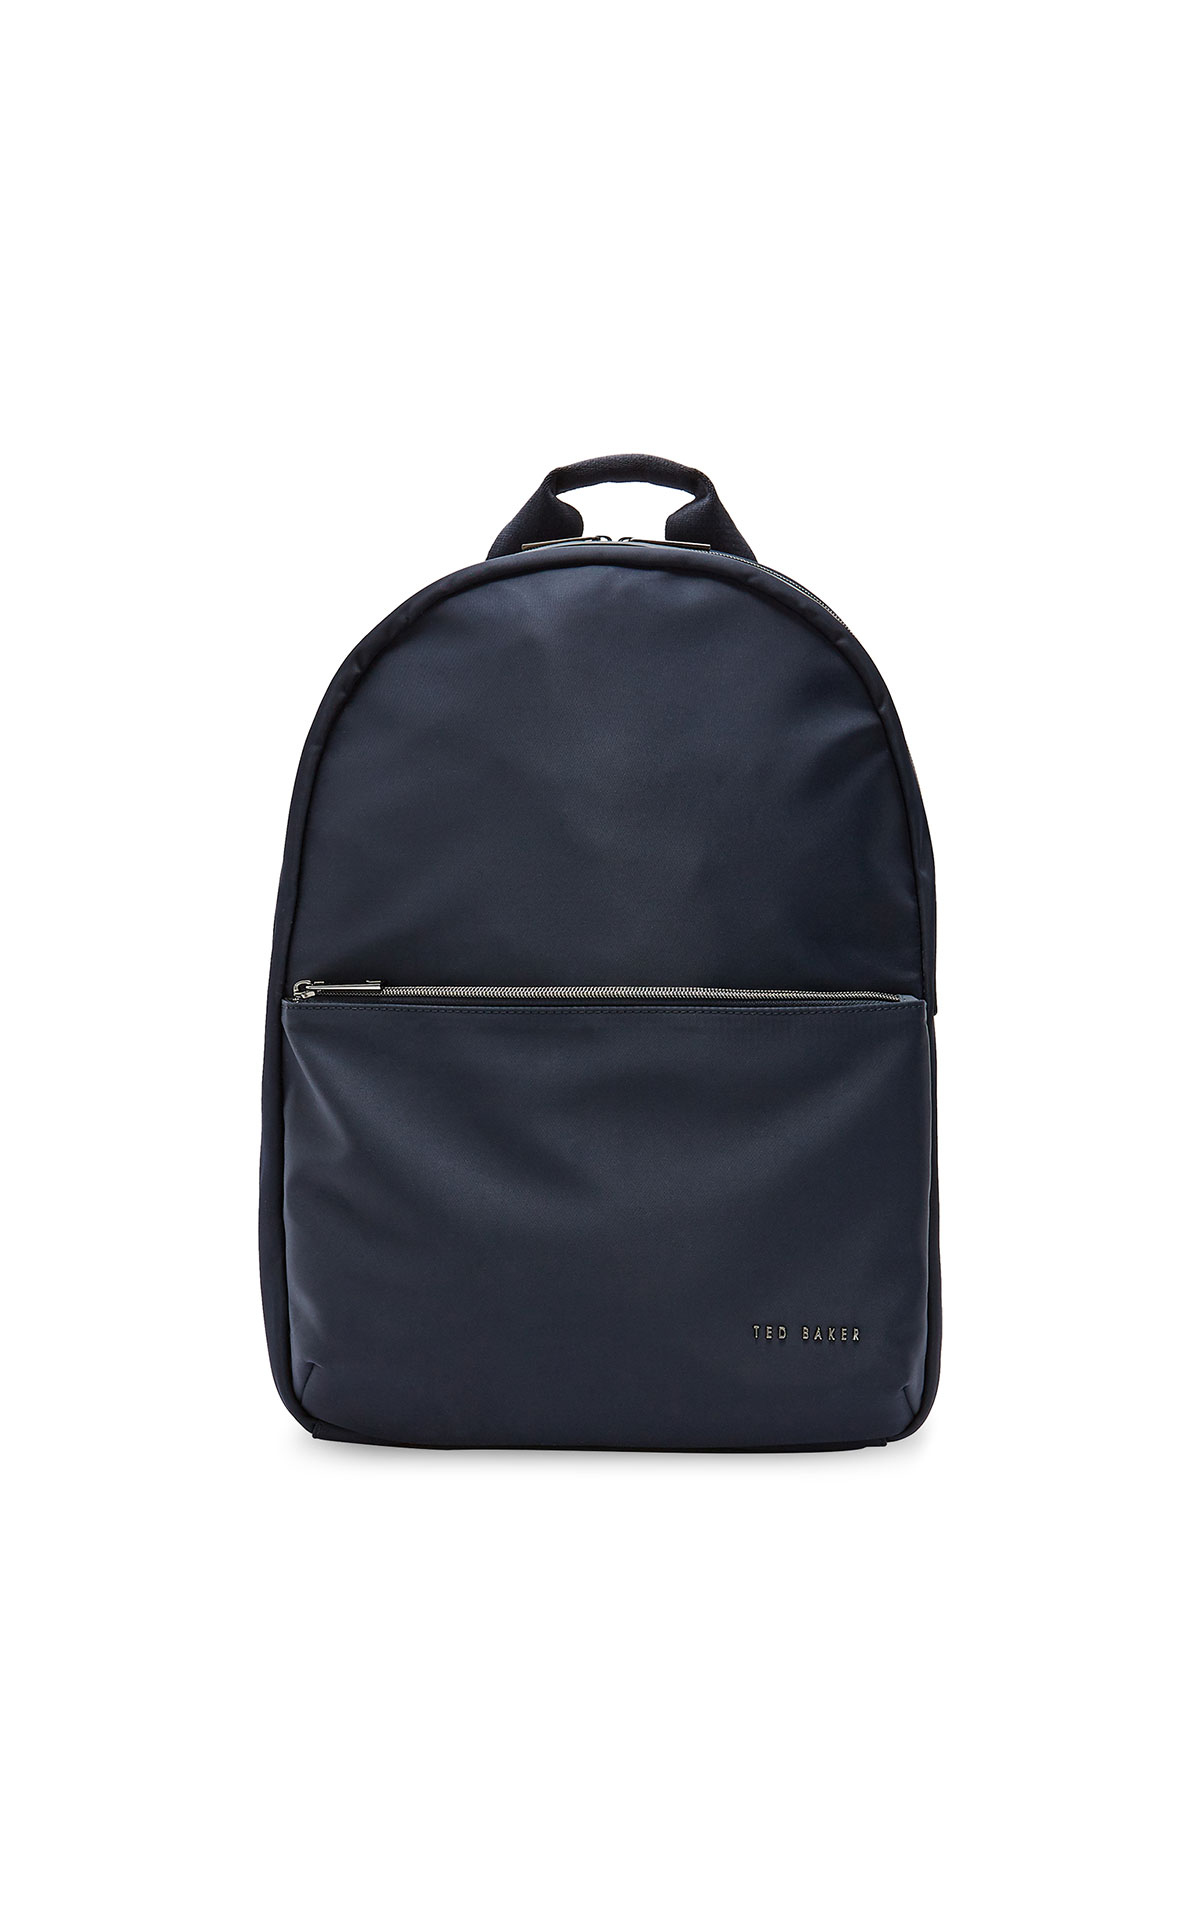 Ted Baker Ladonna plain nylon backpack from Bicester Village